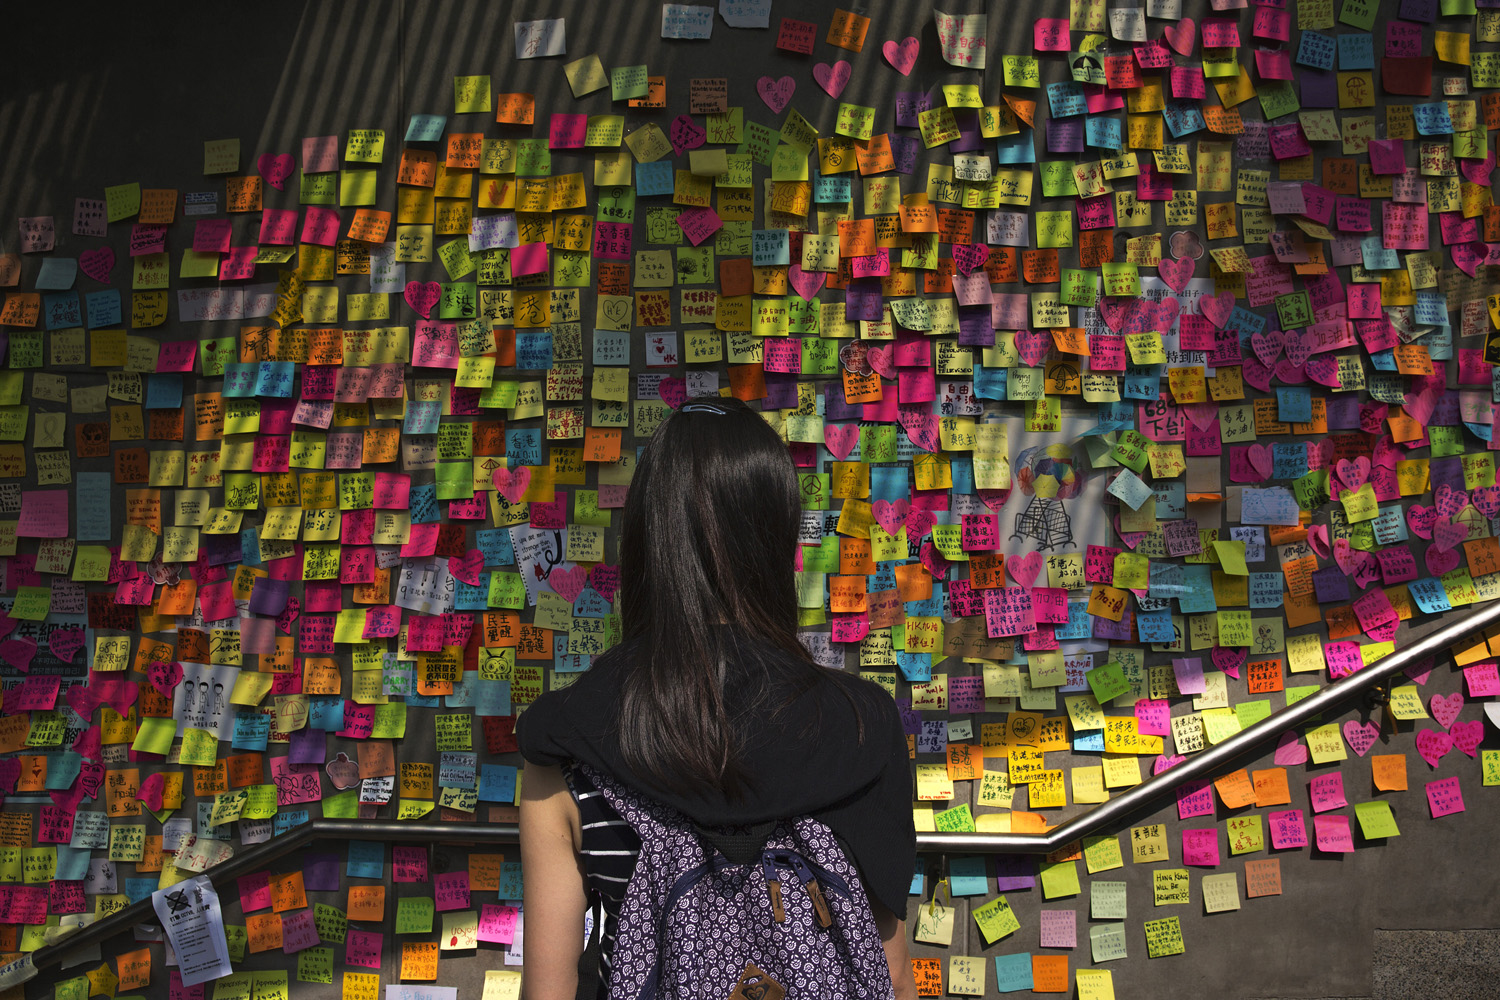 On a wall just outside Hong Kong's main government offices, protesters leave words of support for one another and demands for political action.